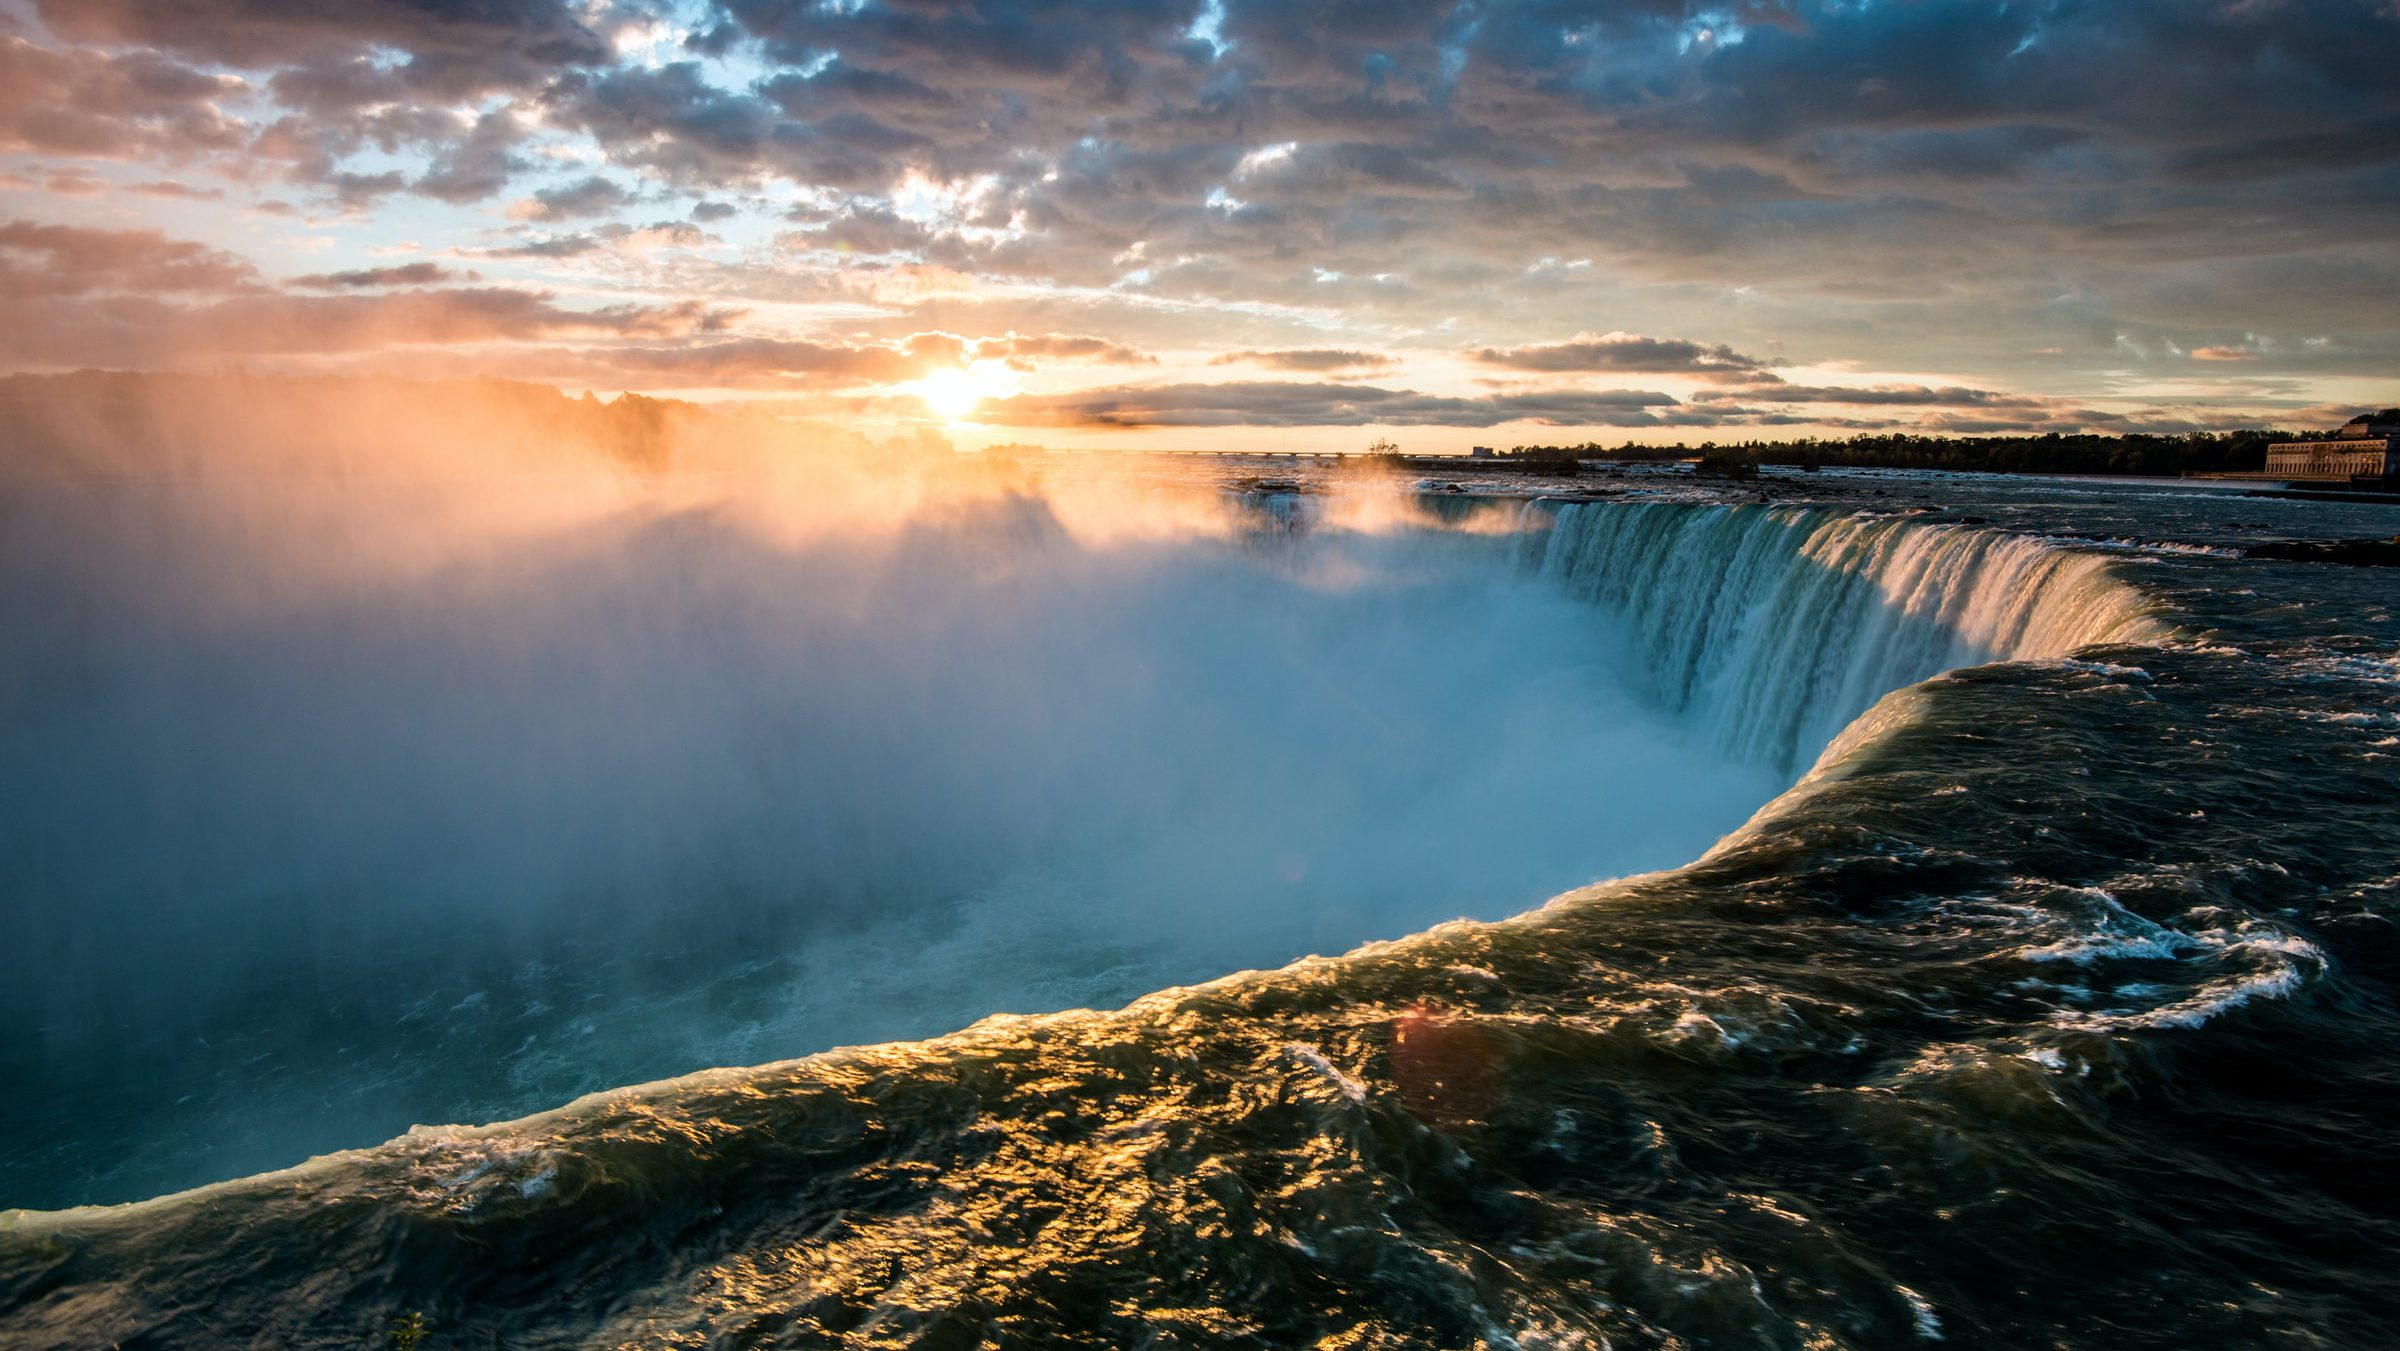 A popular destination among the natural wonders in the U.S. is Niagara Falls